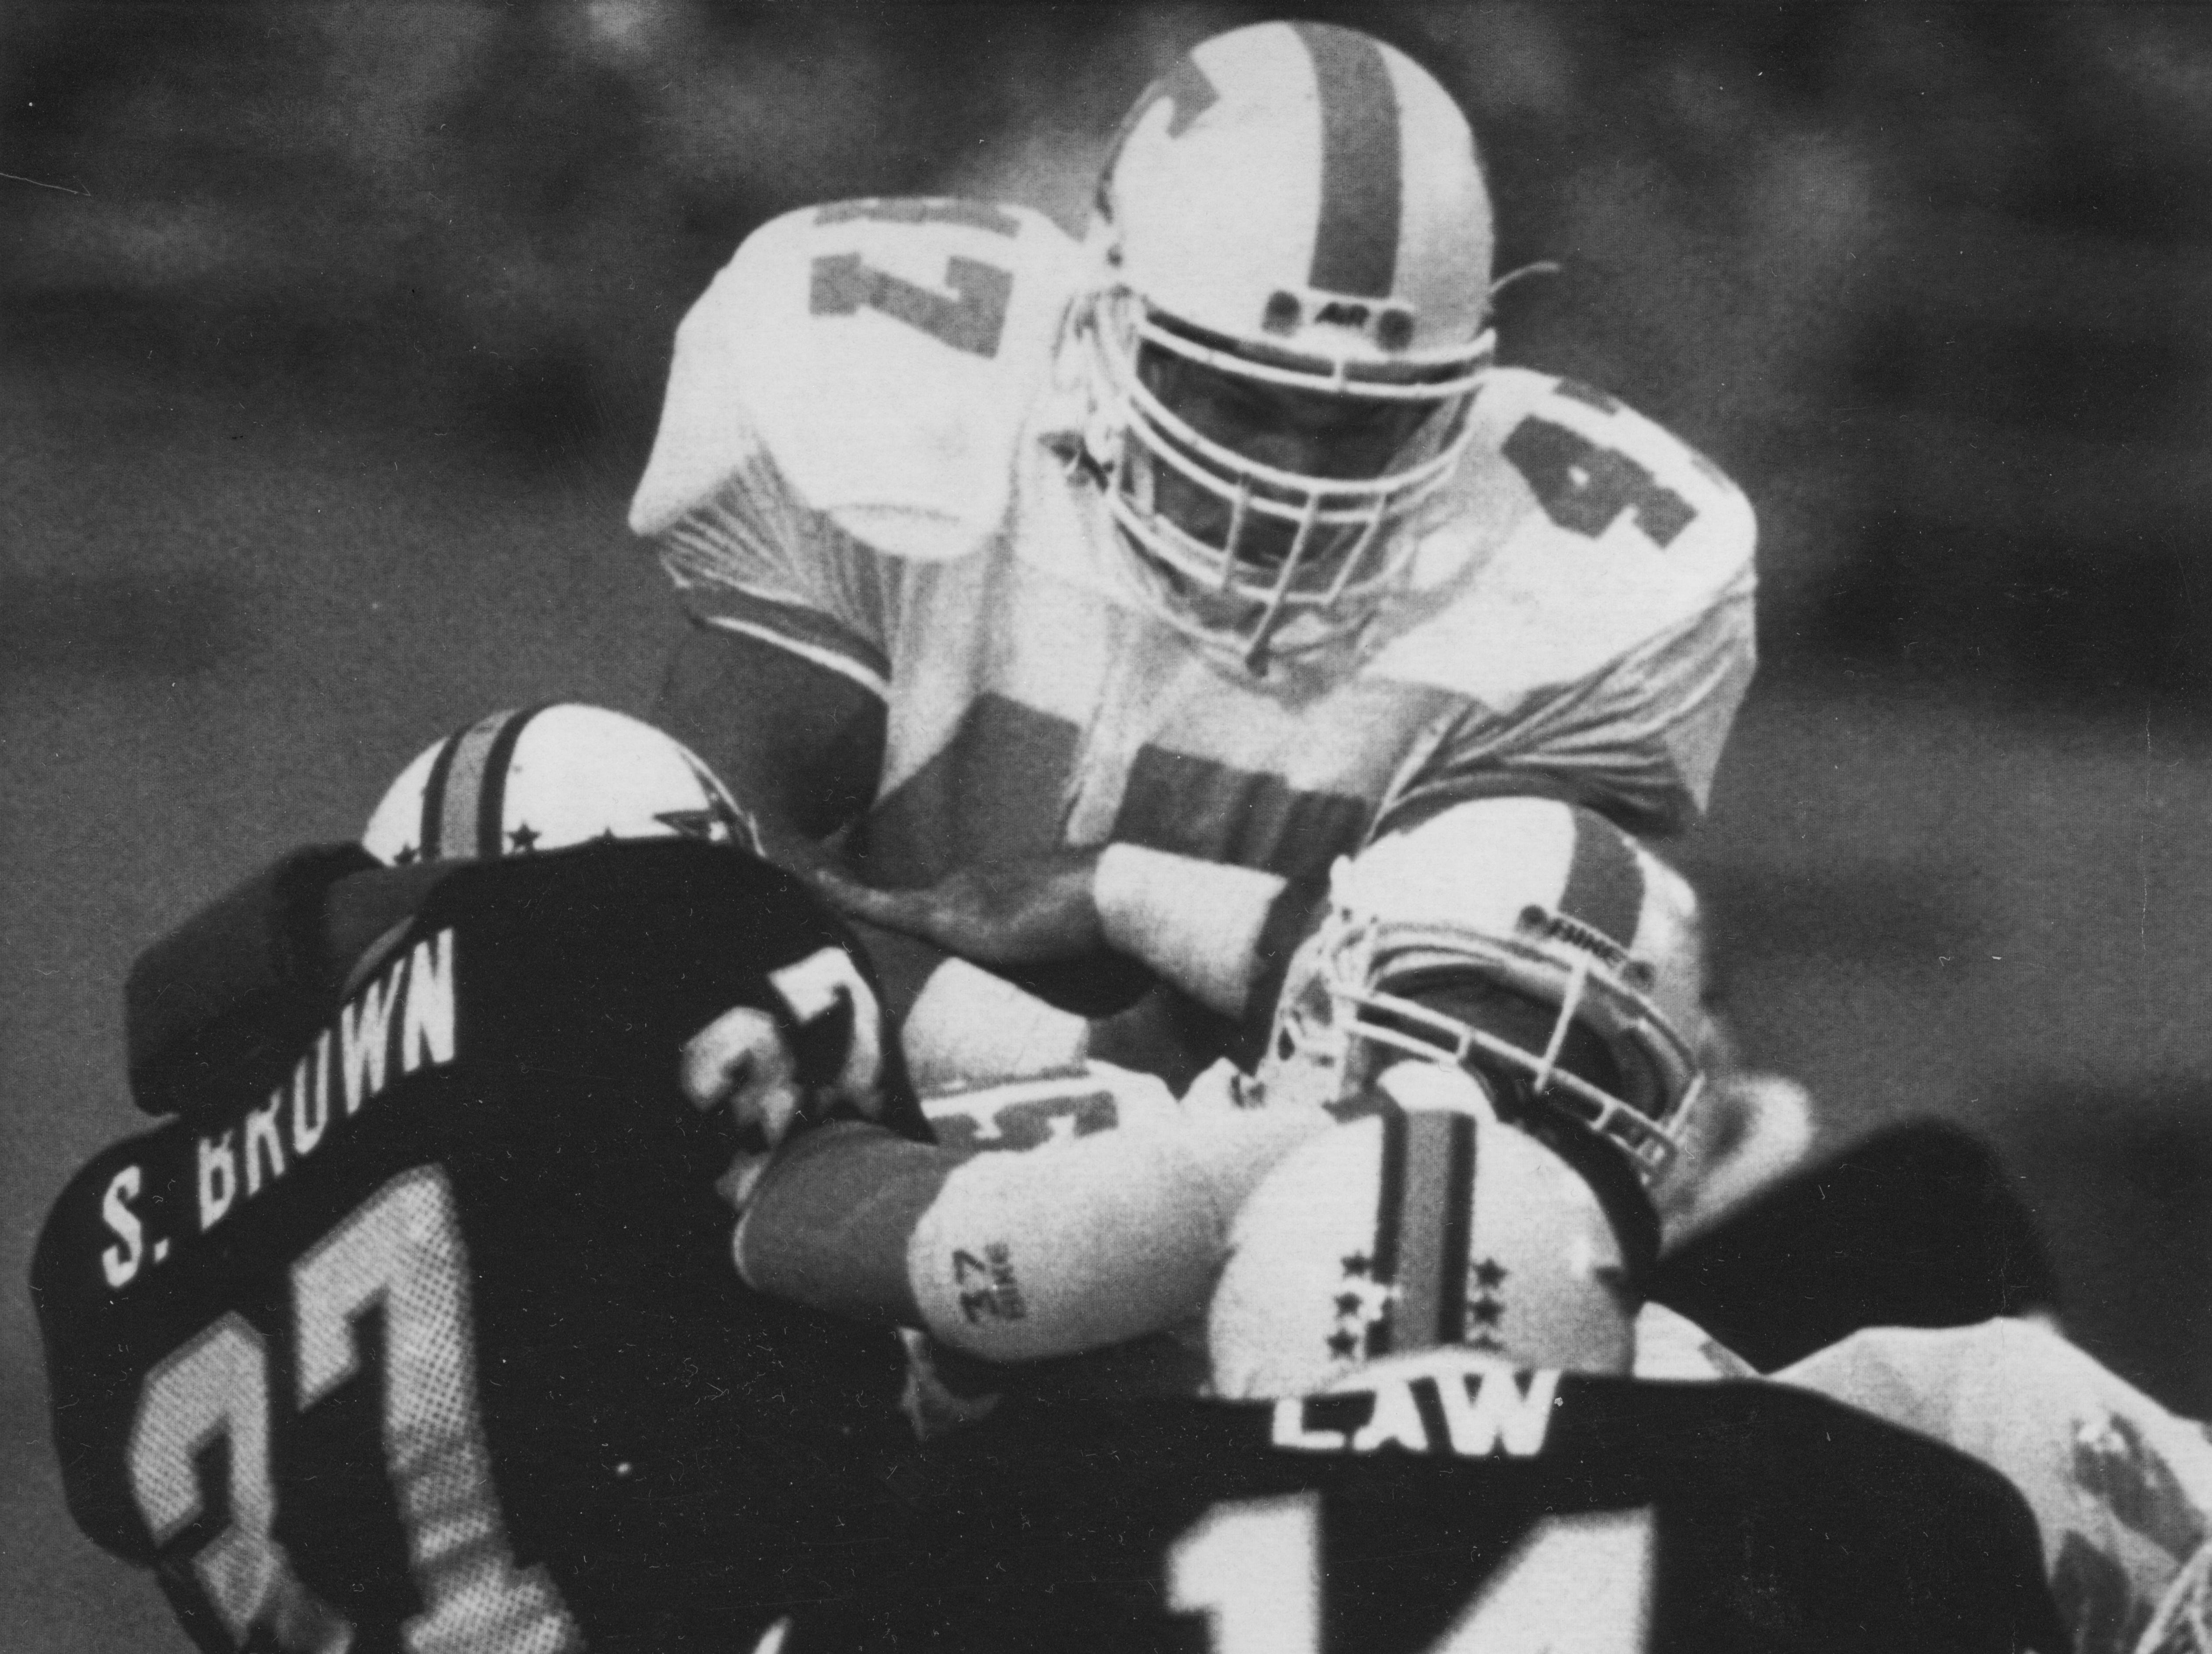 Greg Master dives over the top for a first down in 1988.